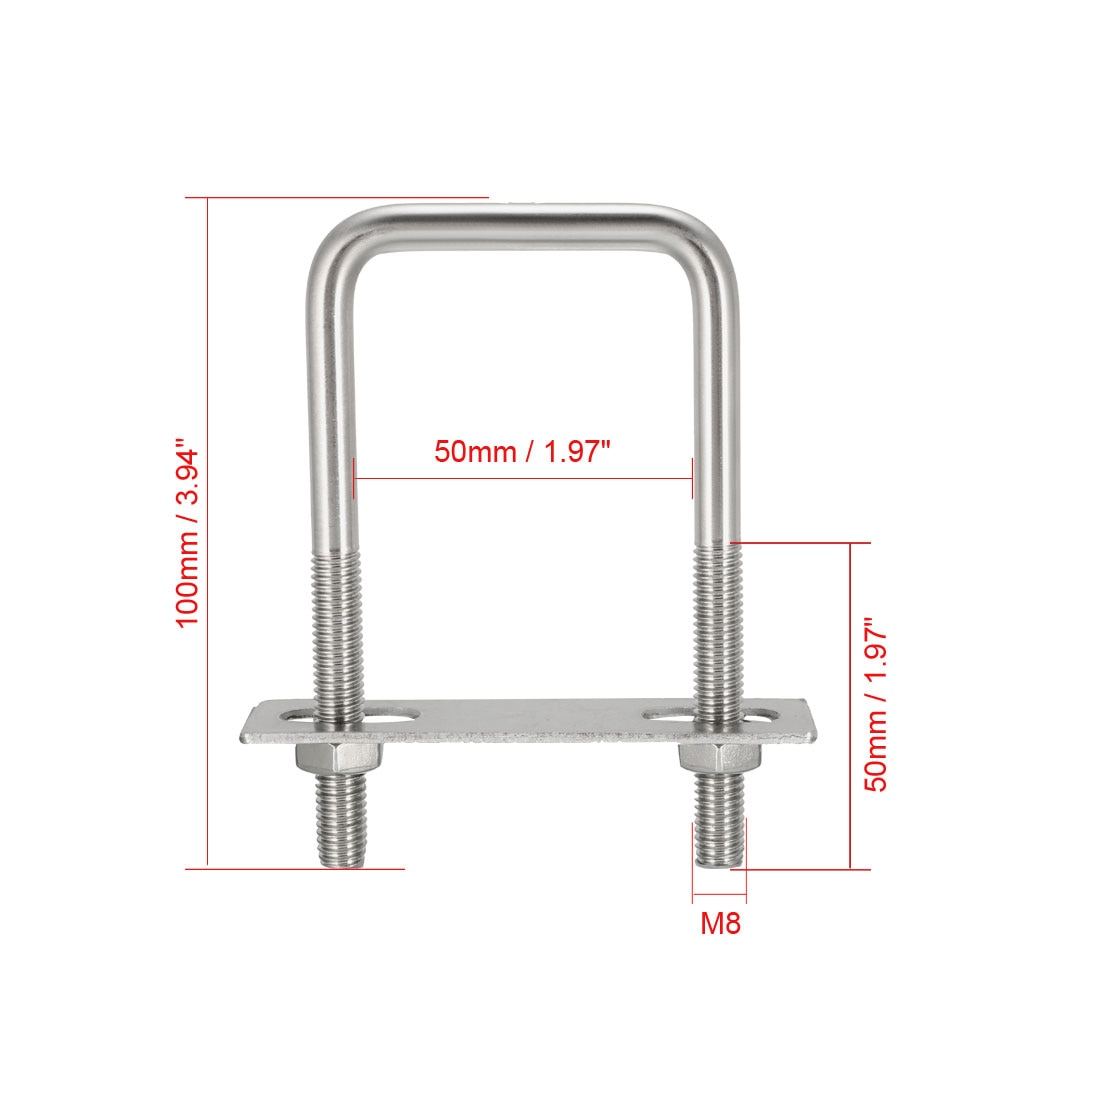 uxcell U-Bolts Inner Width 304 Stainless Steel with Nuts Frame Straps Parts M8 50mm 1Pcs